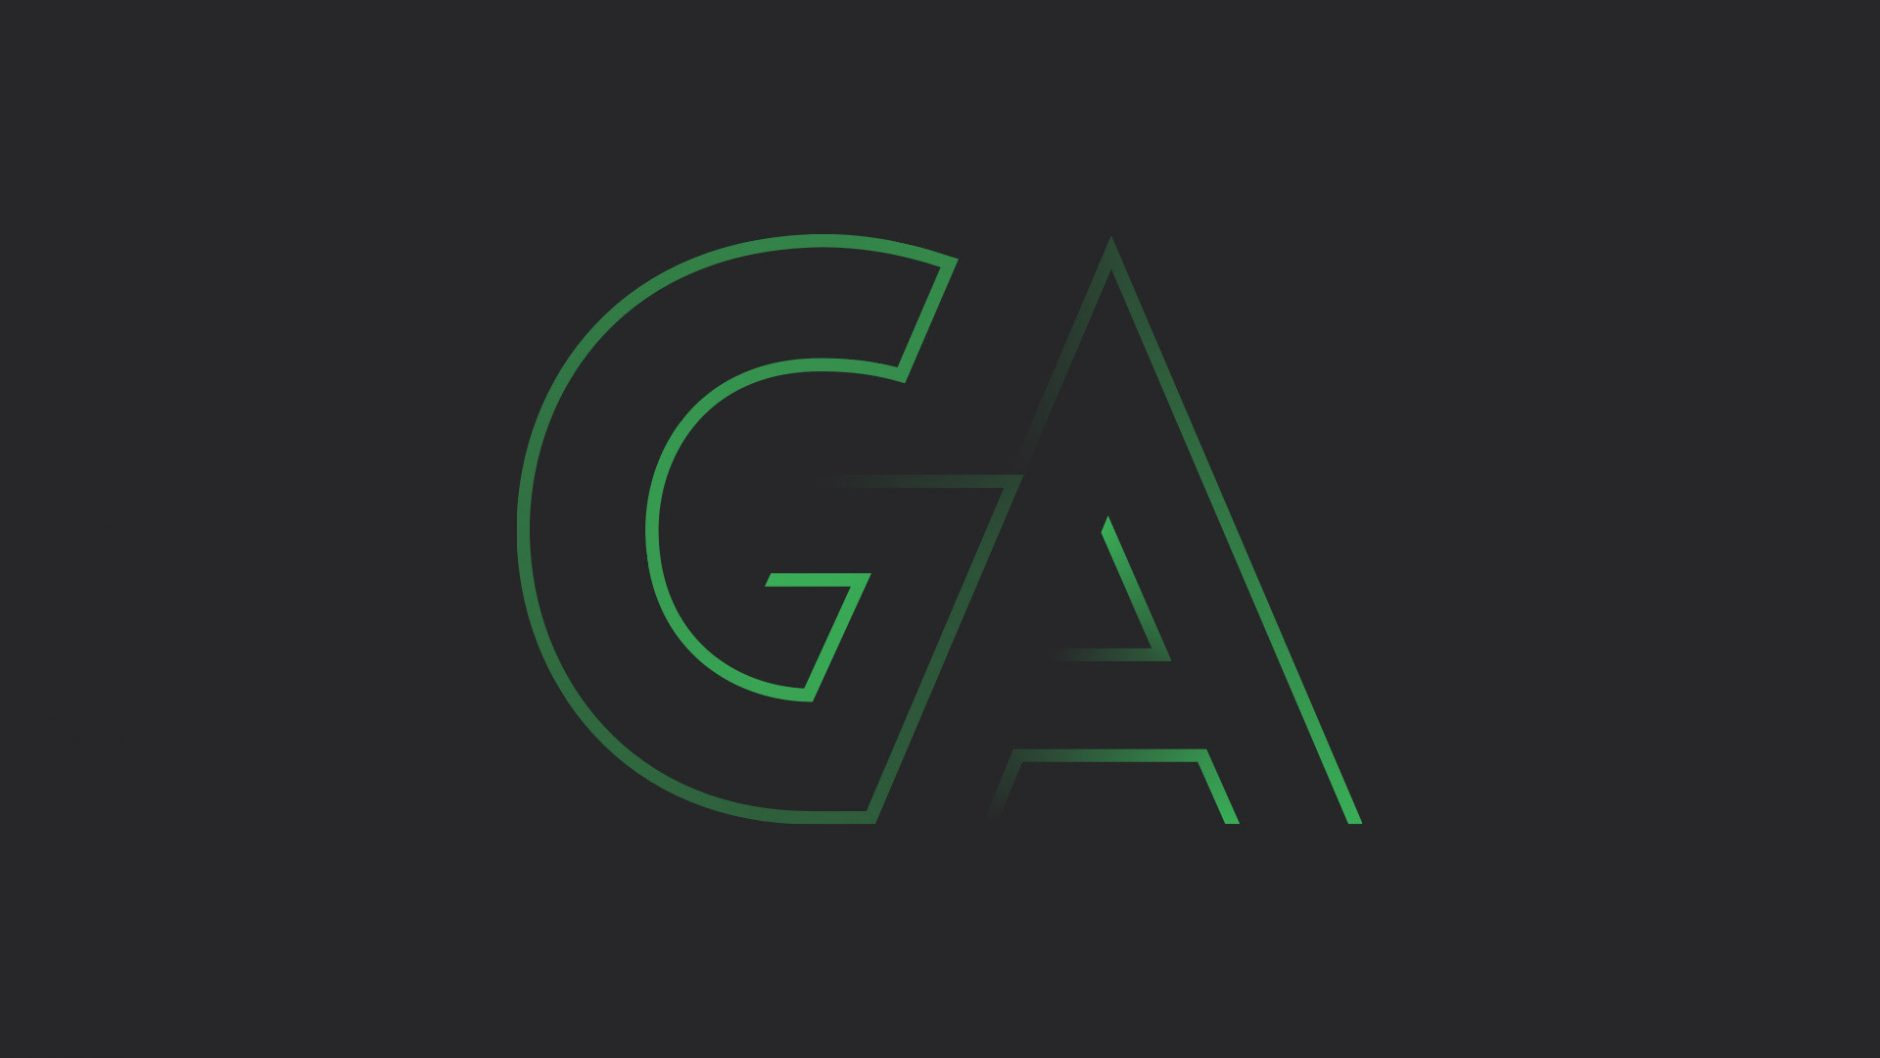 Green Athletics – Monogram Visual